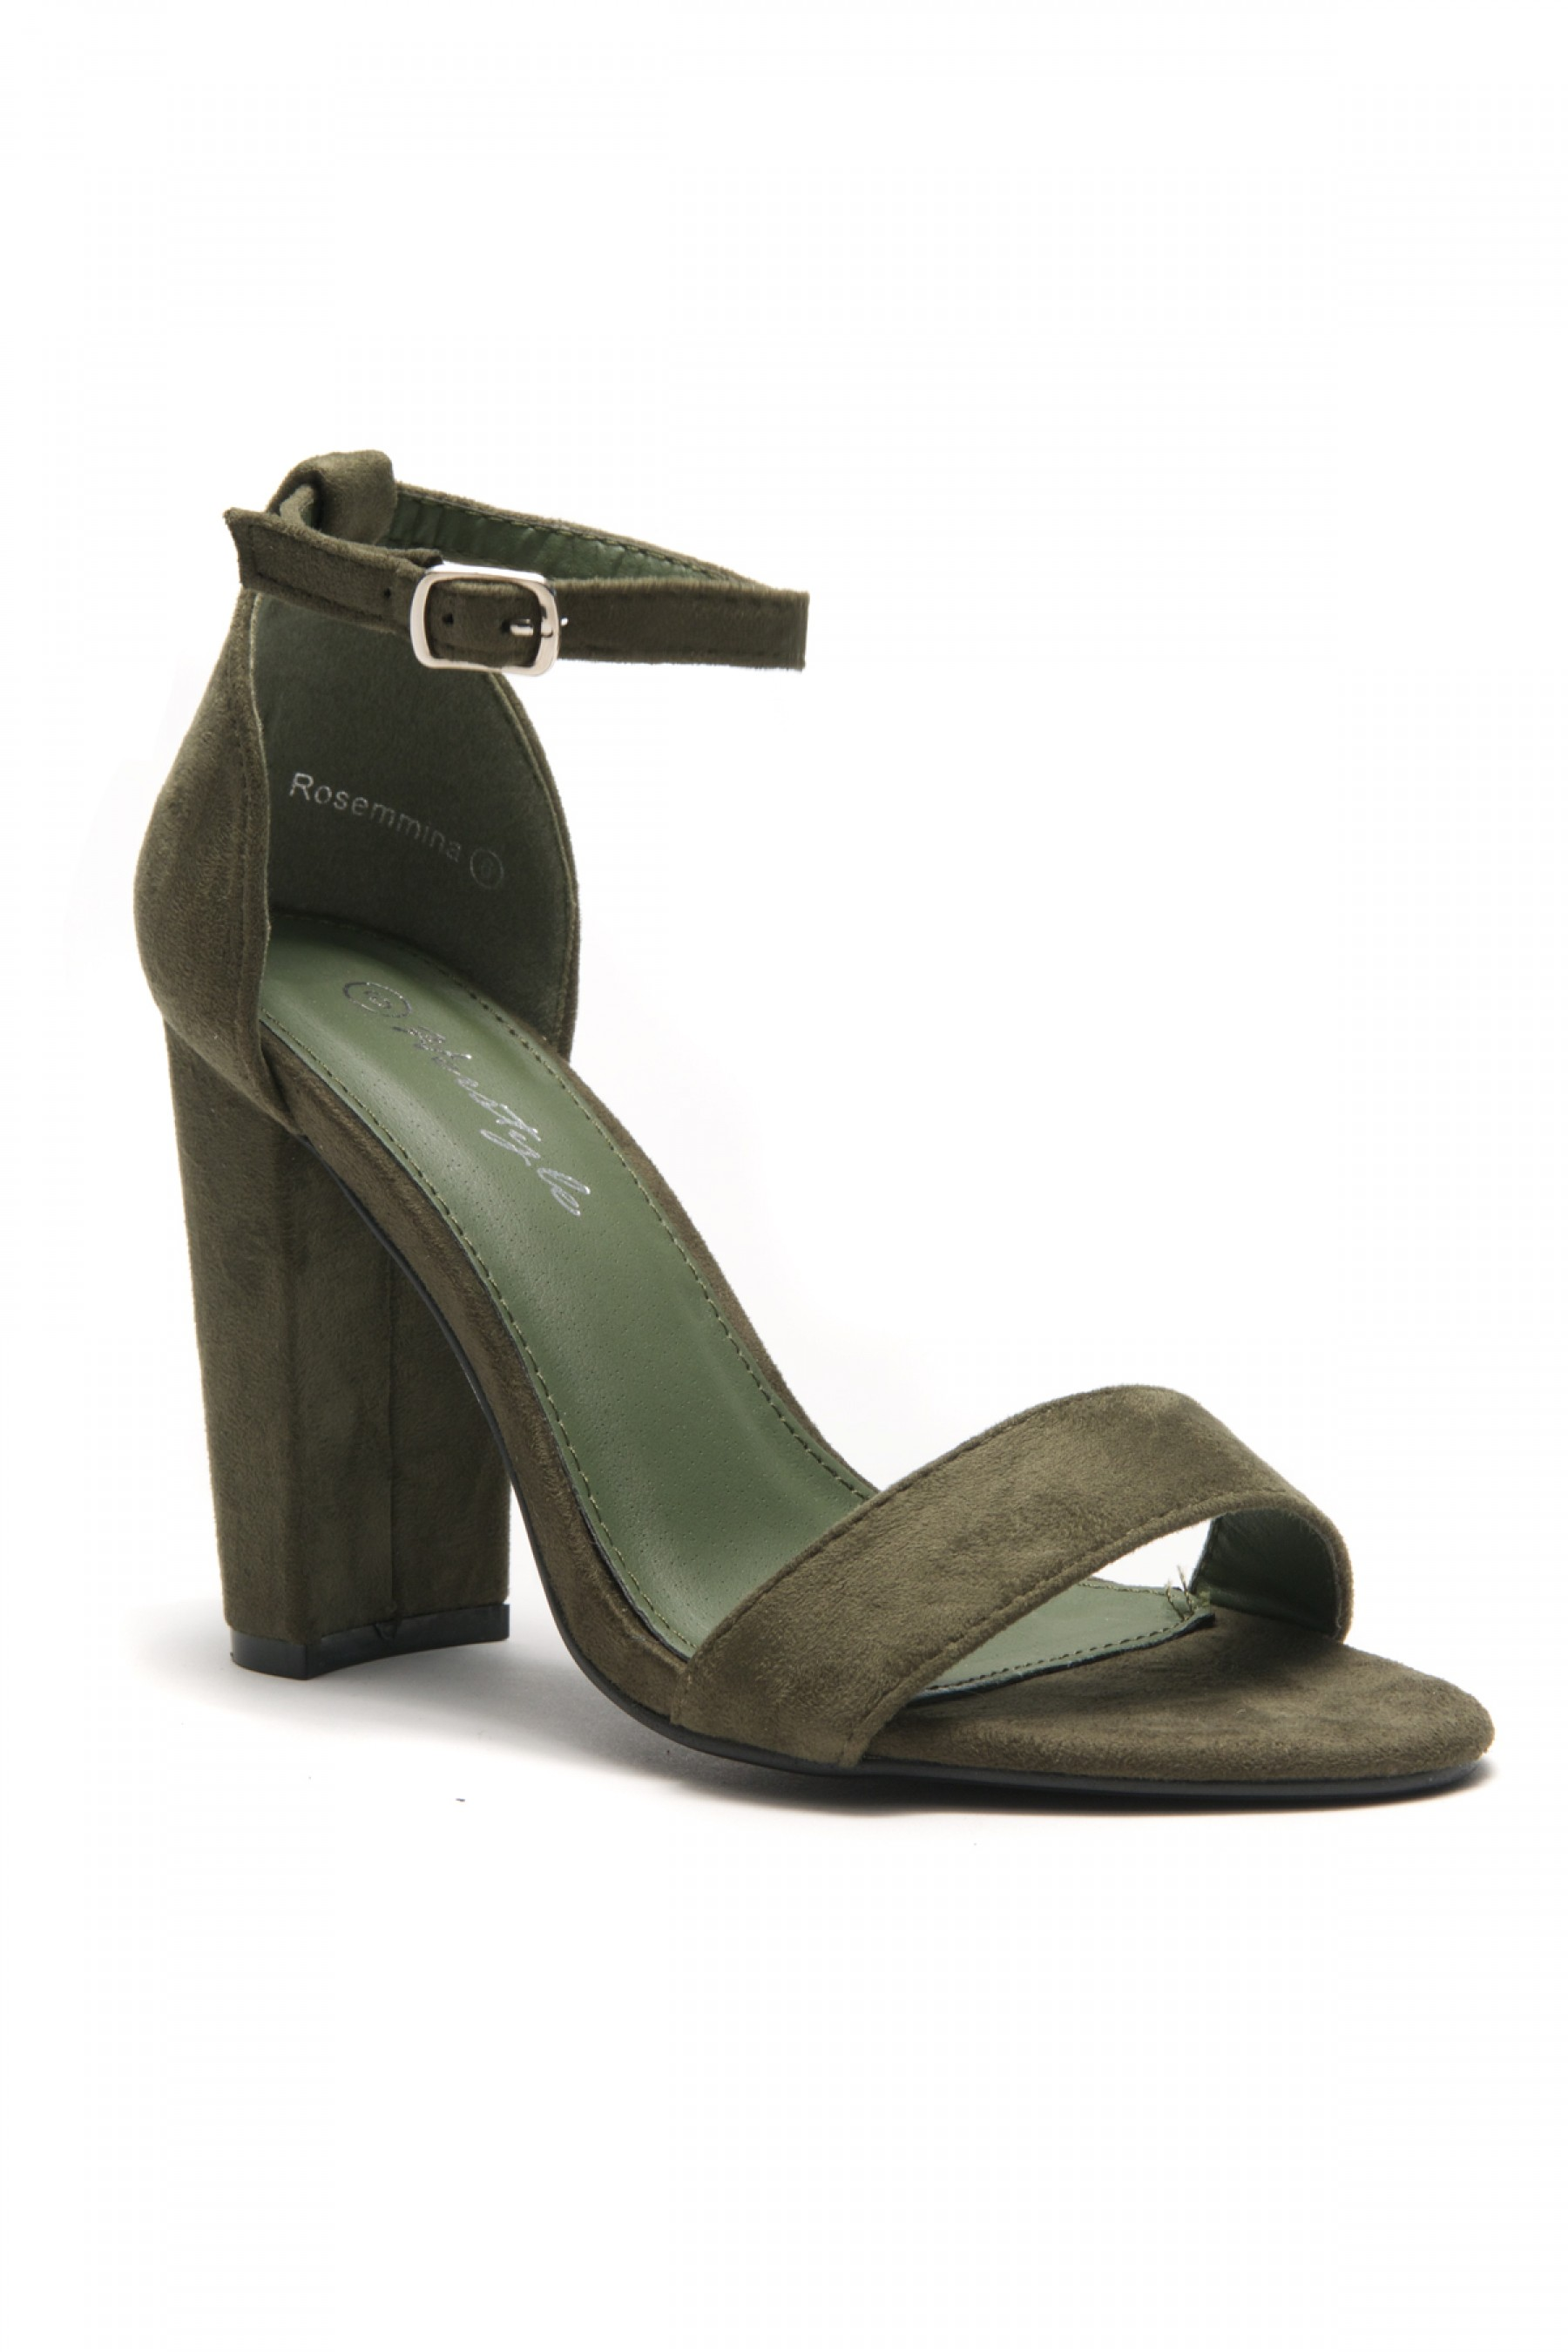 HerStyle Rosemmina Open Toe Ankle Strap Chunky Heel (Olive)